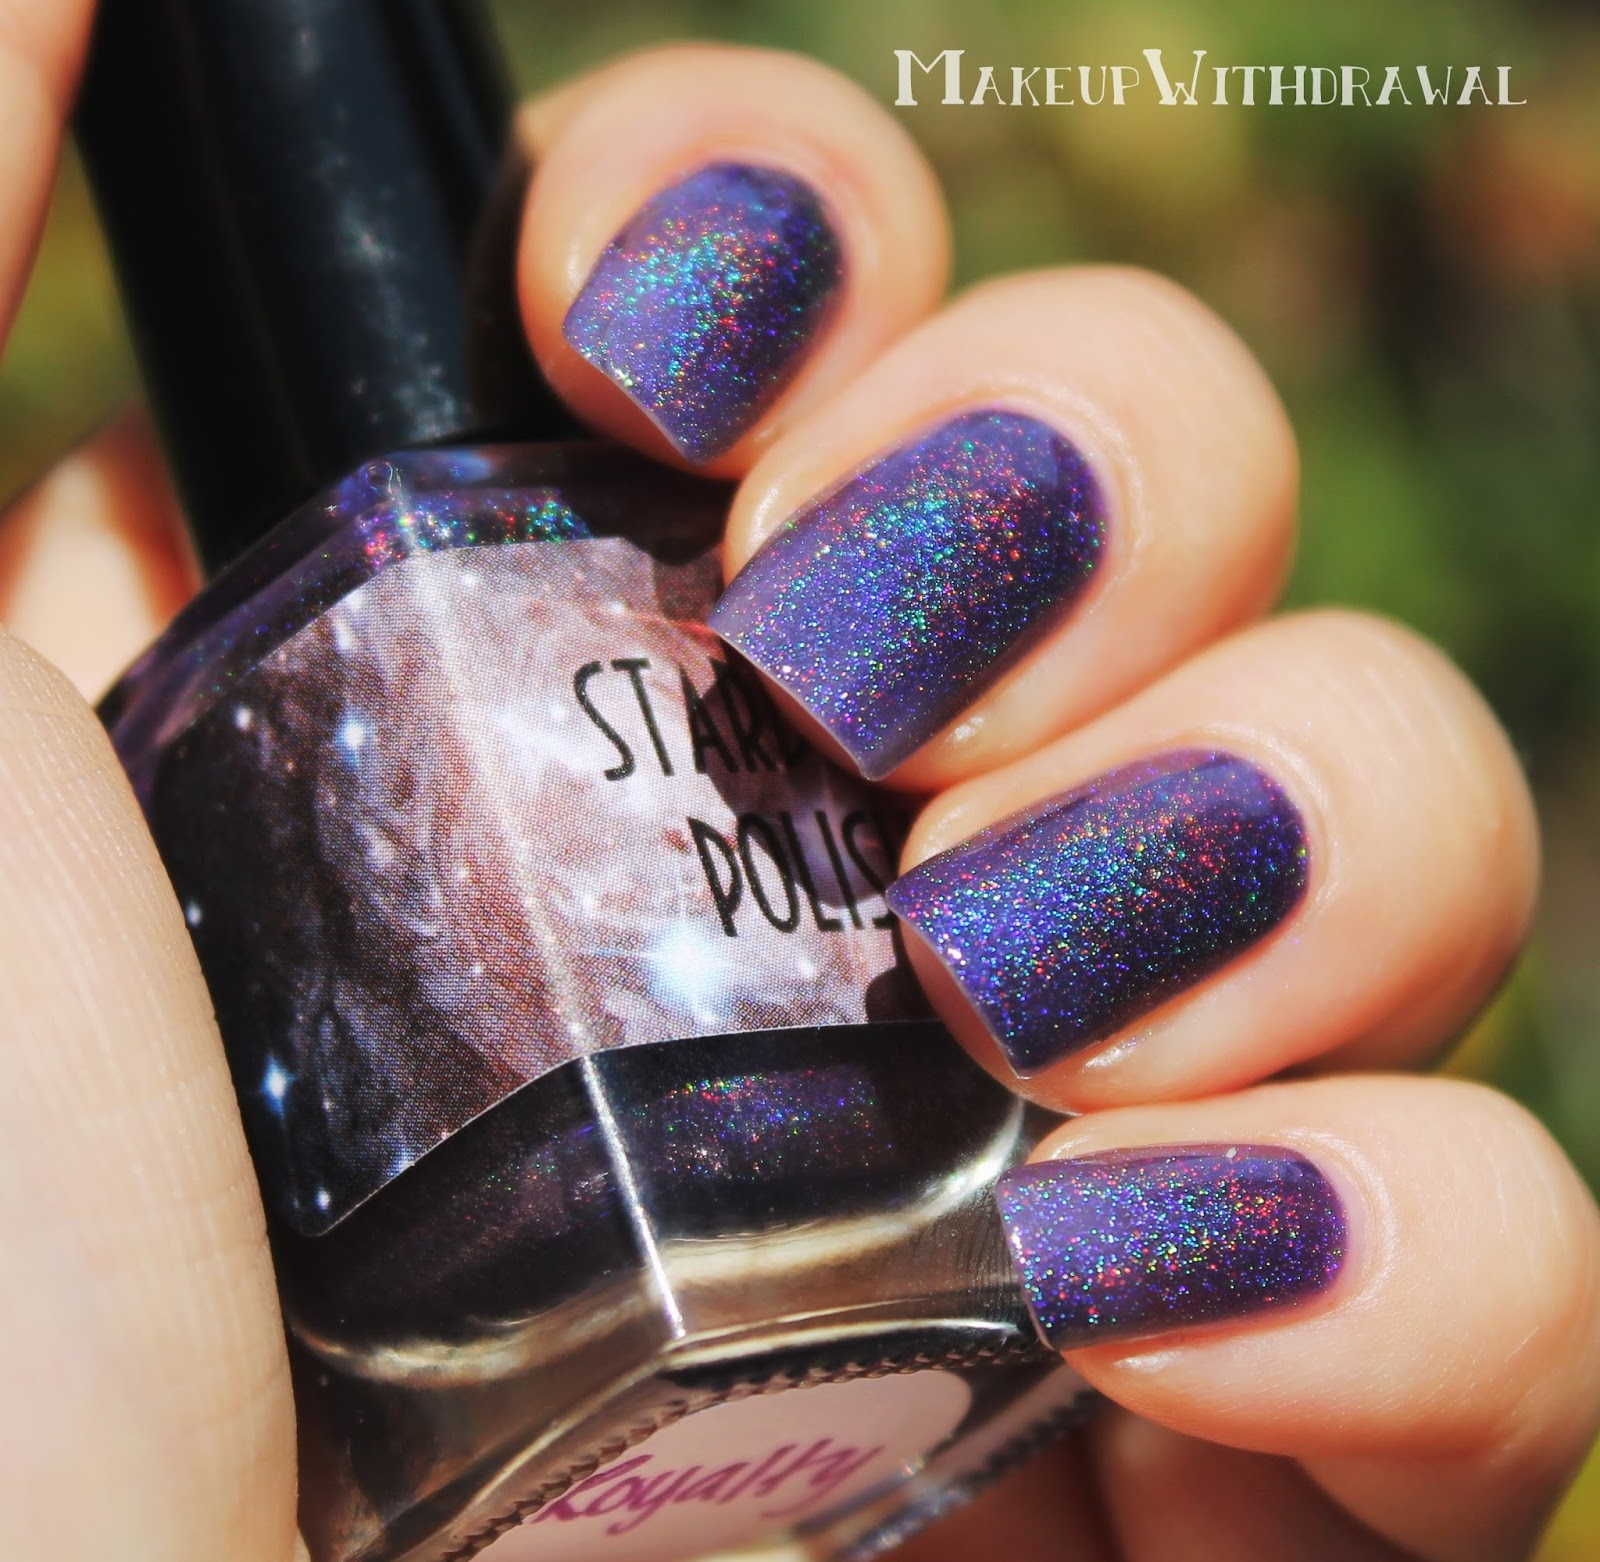 Star dust nail lacquer guerlain 25 - Royalty Is A Squishy Purple Jelly Holo Dark Grape Jelly One Of The Cooler Purple Holos That I Ve Seen The Formula Was Really Fluid But The Coloring Was